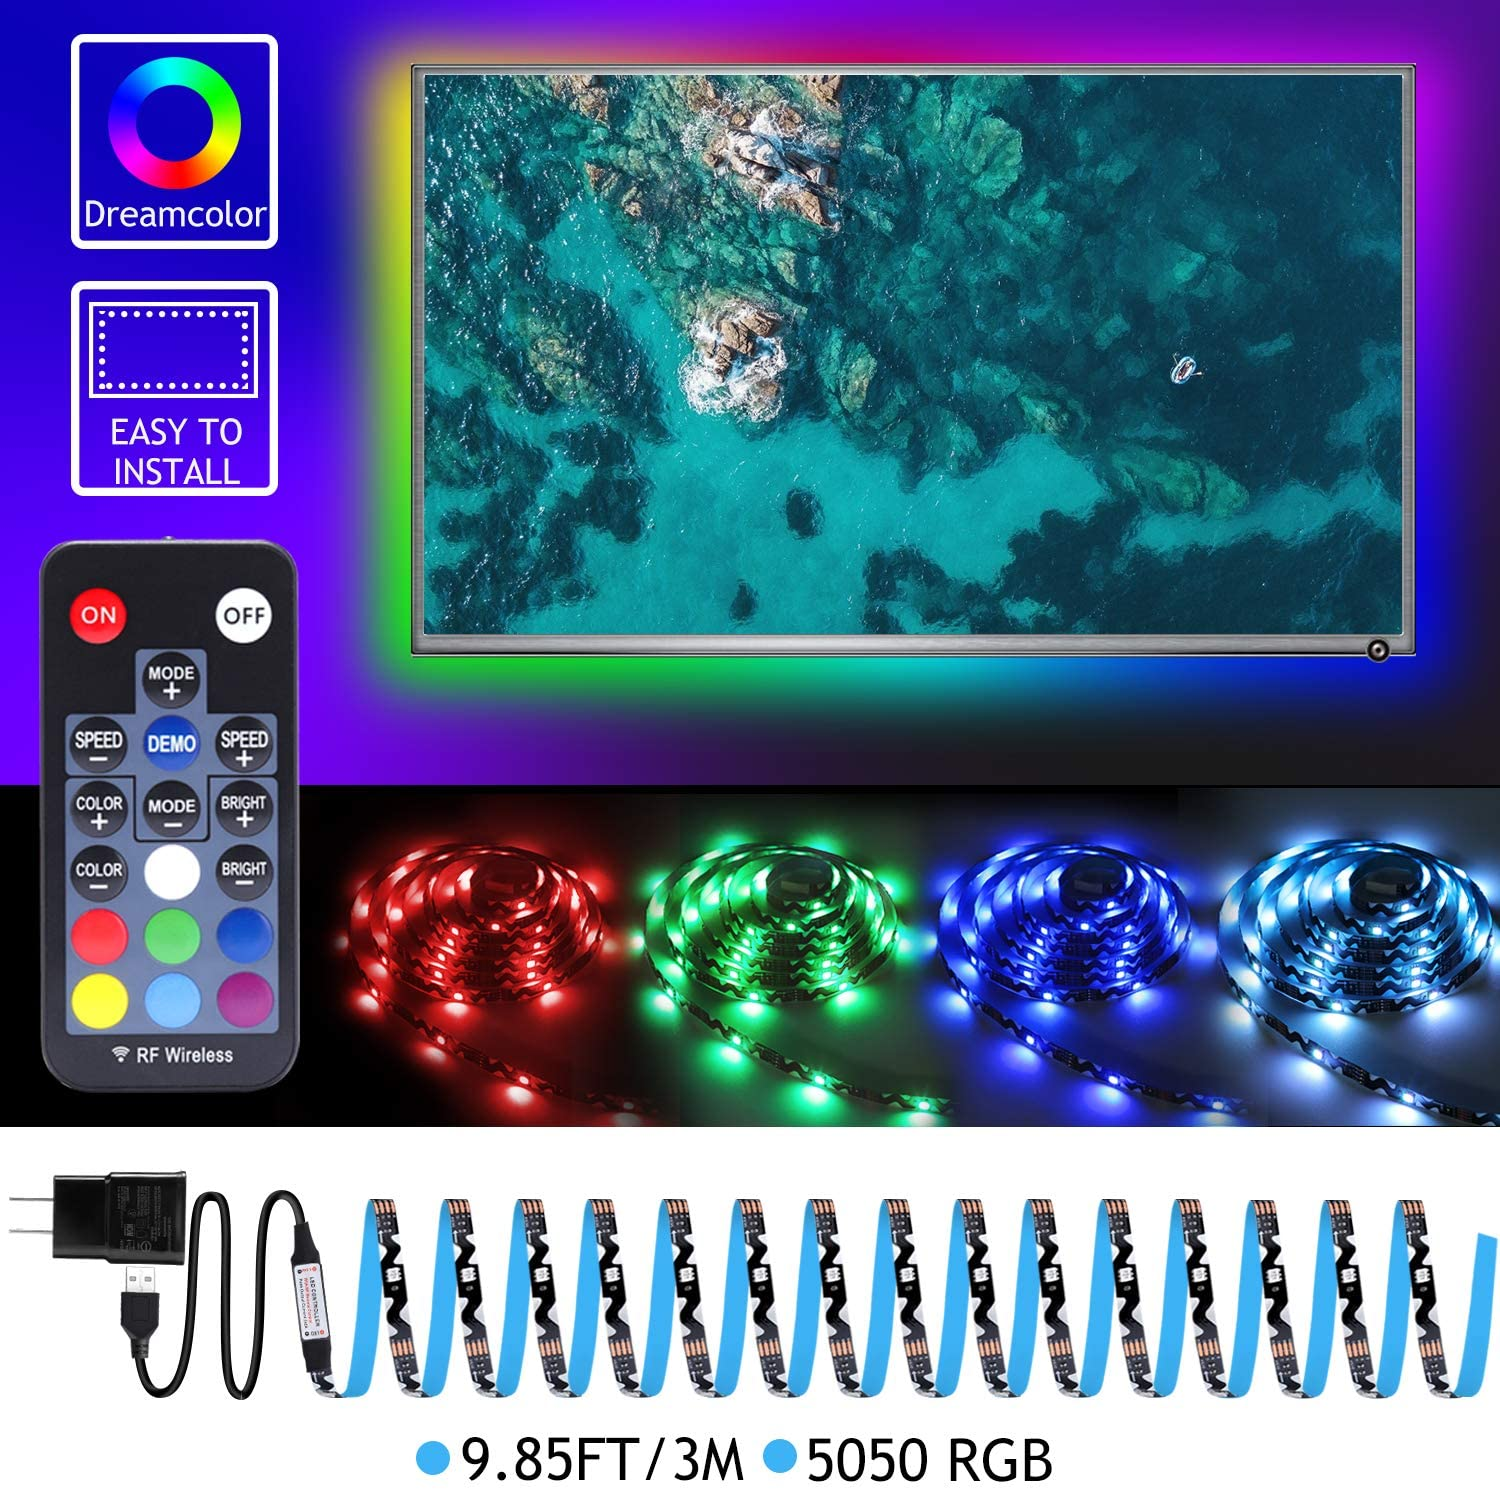 USB LED Strip Lights, 9.85ft S Shape Type Black,TV Backlight 5050RGB USB 5V with 18-Key RF Remote Controller with USB2A Power for Under Cabinet Lighting, Bias Lighting, Home Theater Decor